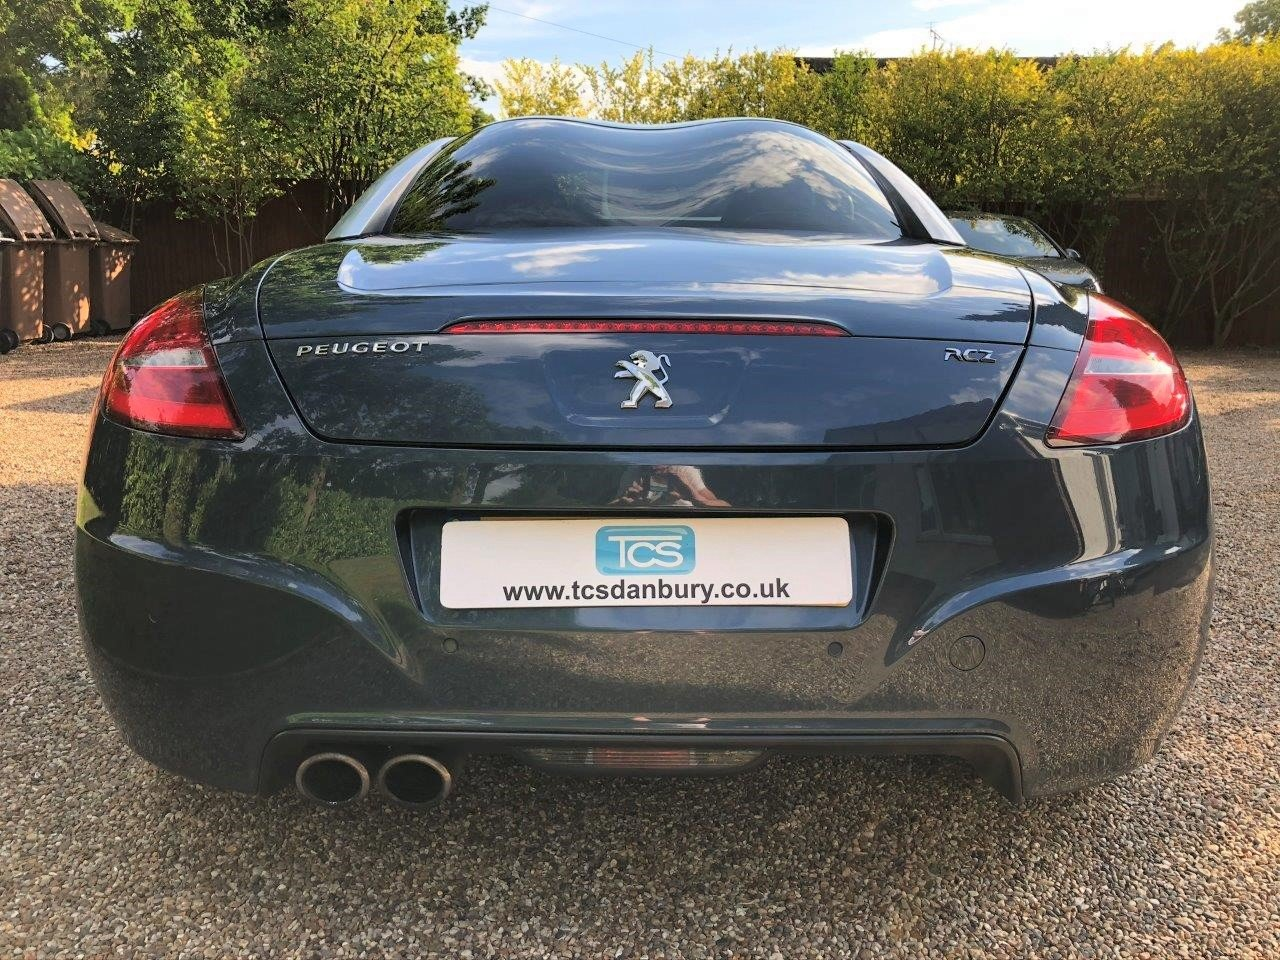 2013 Peugeot RCZ GT 156 1.6 Turbo 6-Speed Manual SOLD (picture 5 of 6)